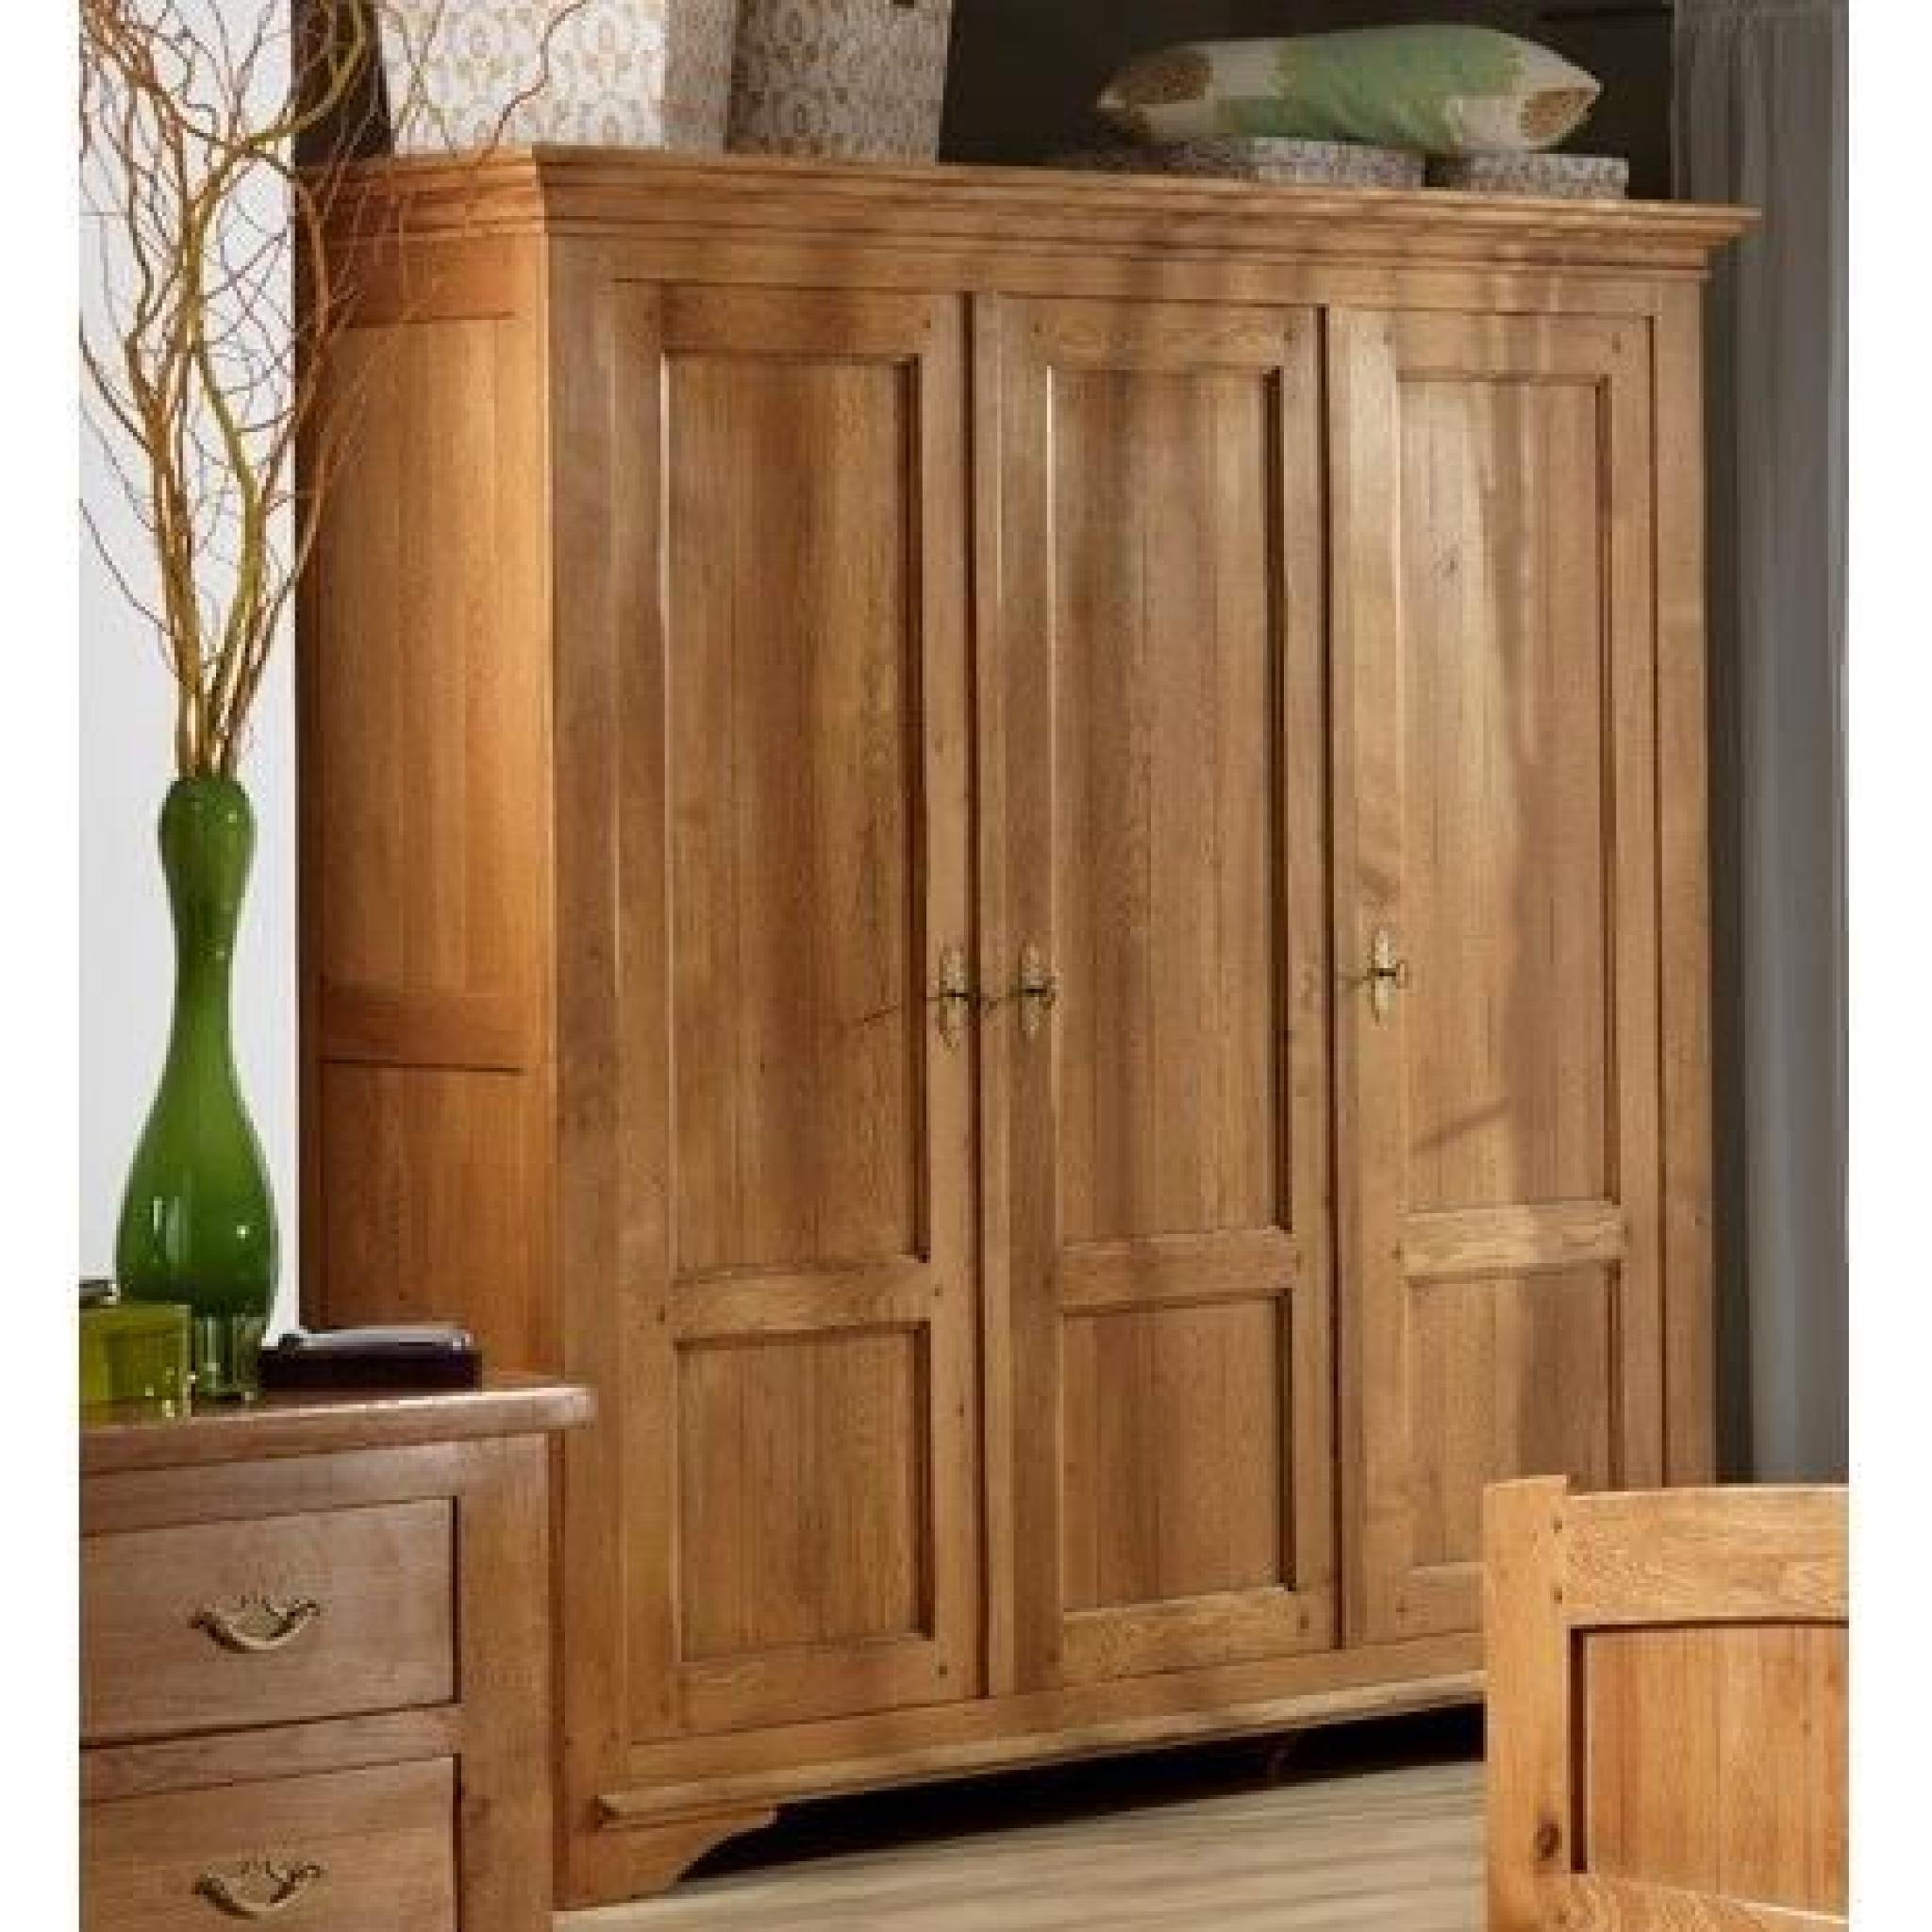 armoire chambre pas cher maison design. Black Bedroom Furniture Sets. Home Design Ideas